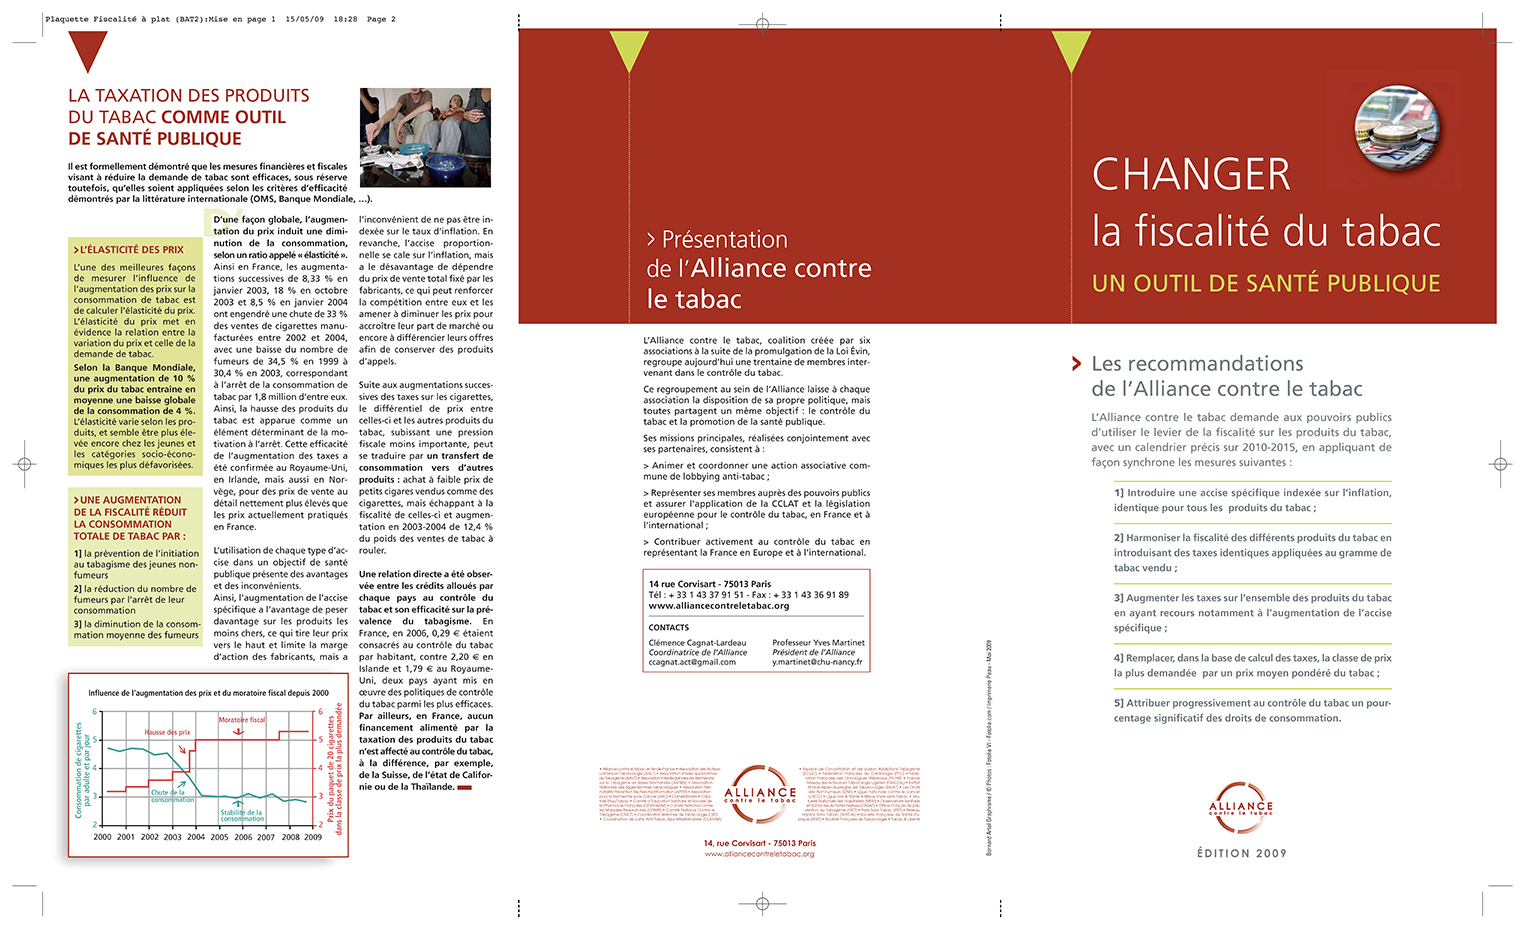 ACT_Changer-la-fiscalite-du-tabac_FR_Page_2.jpg